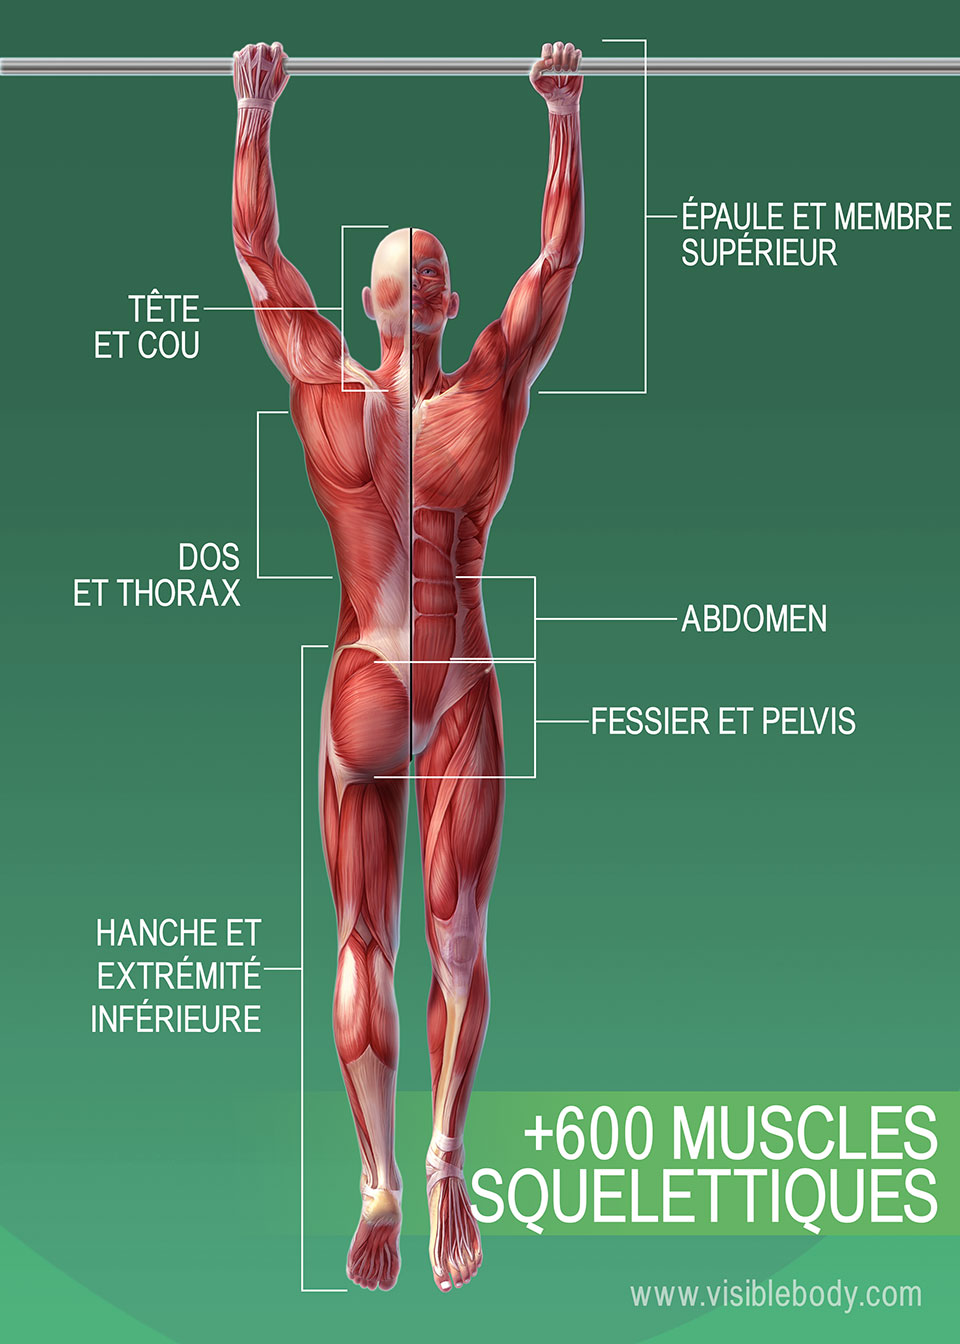 Muscles du corps humain – +600 muscles squelettiques